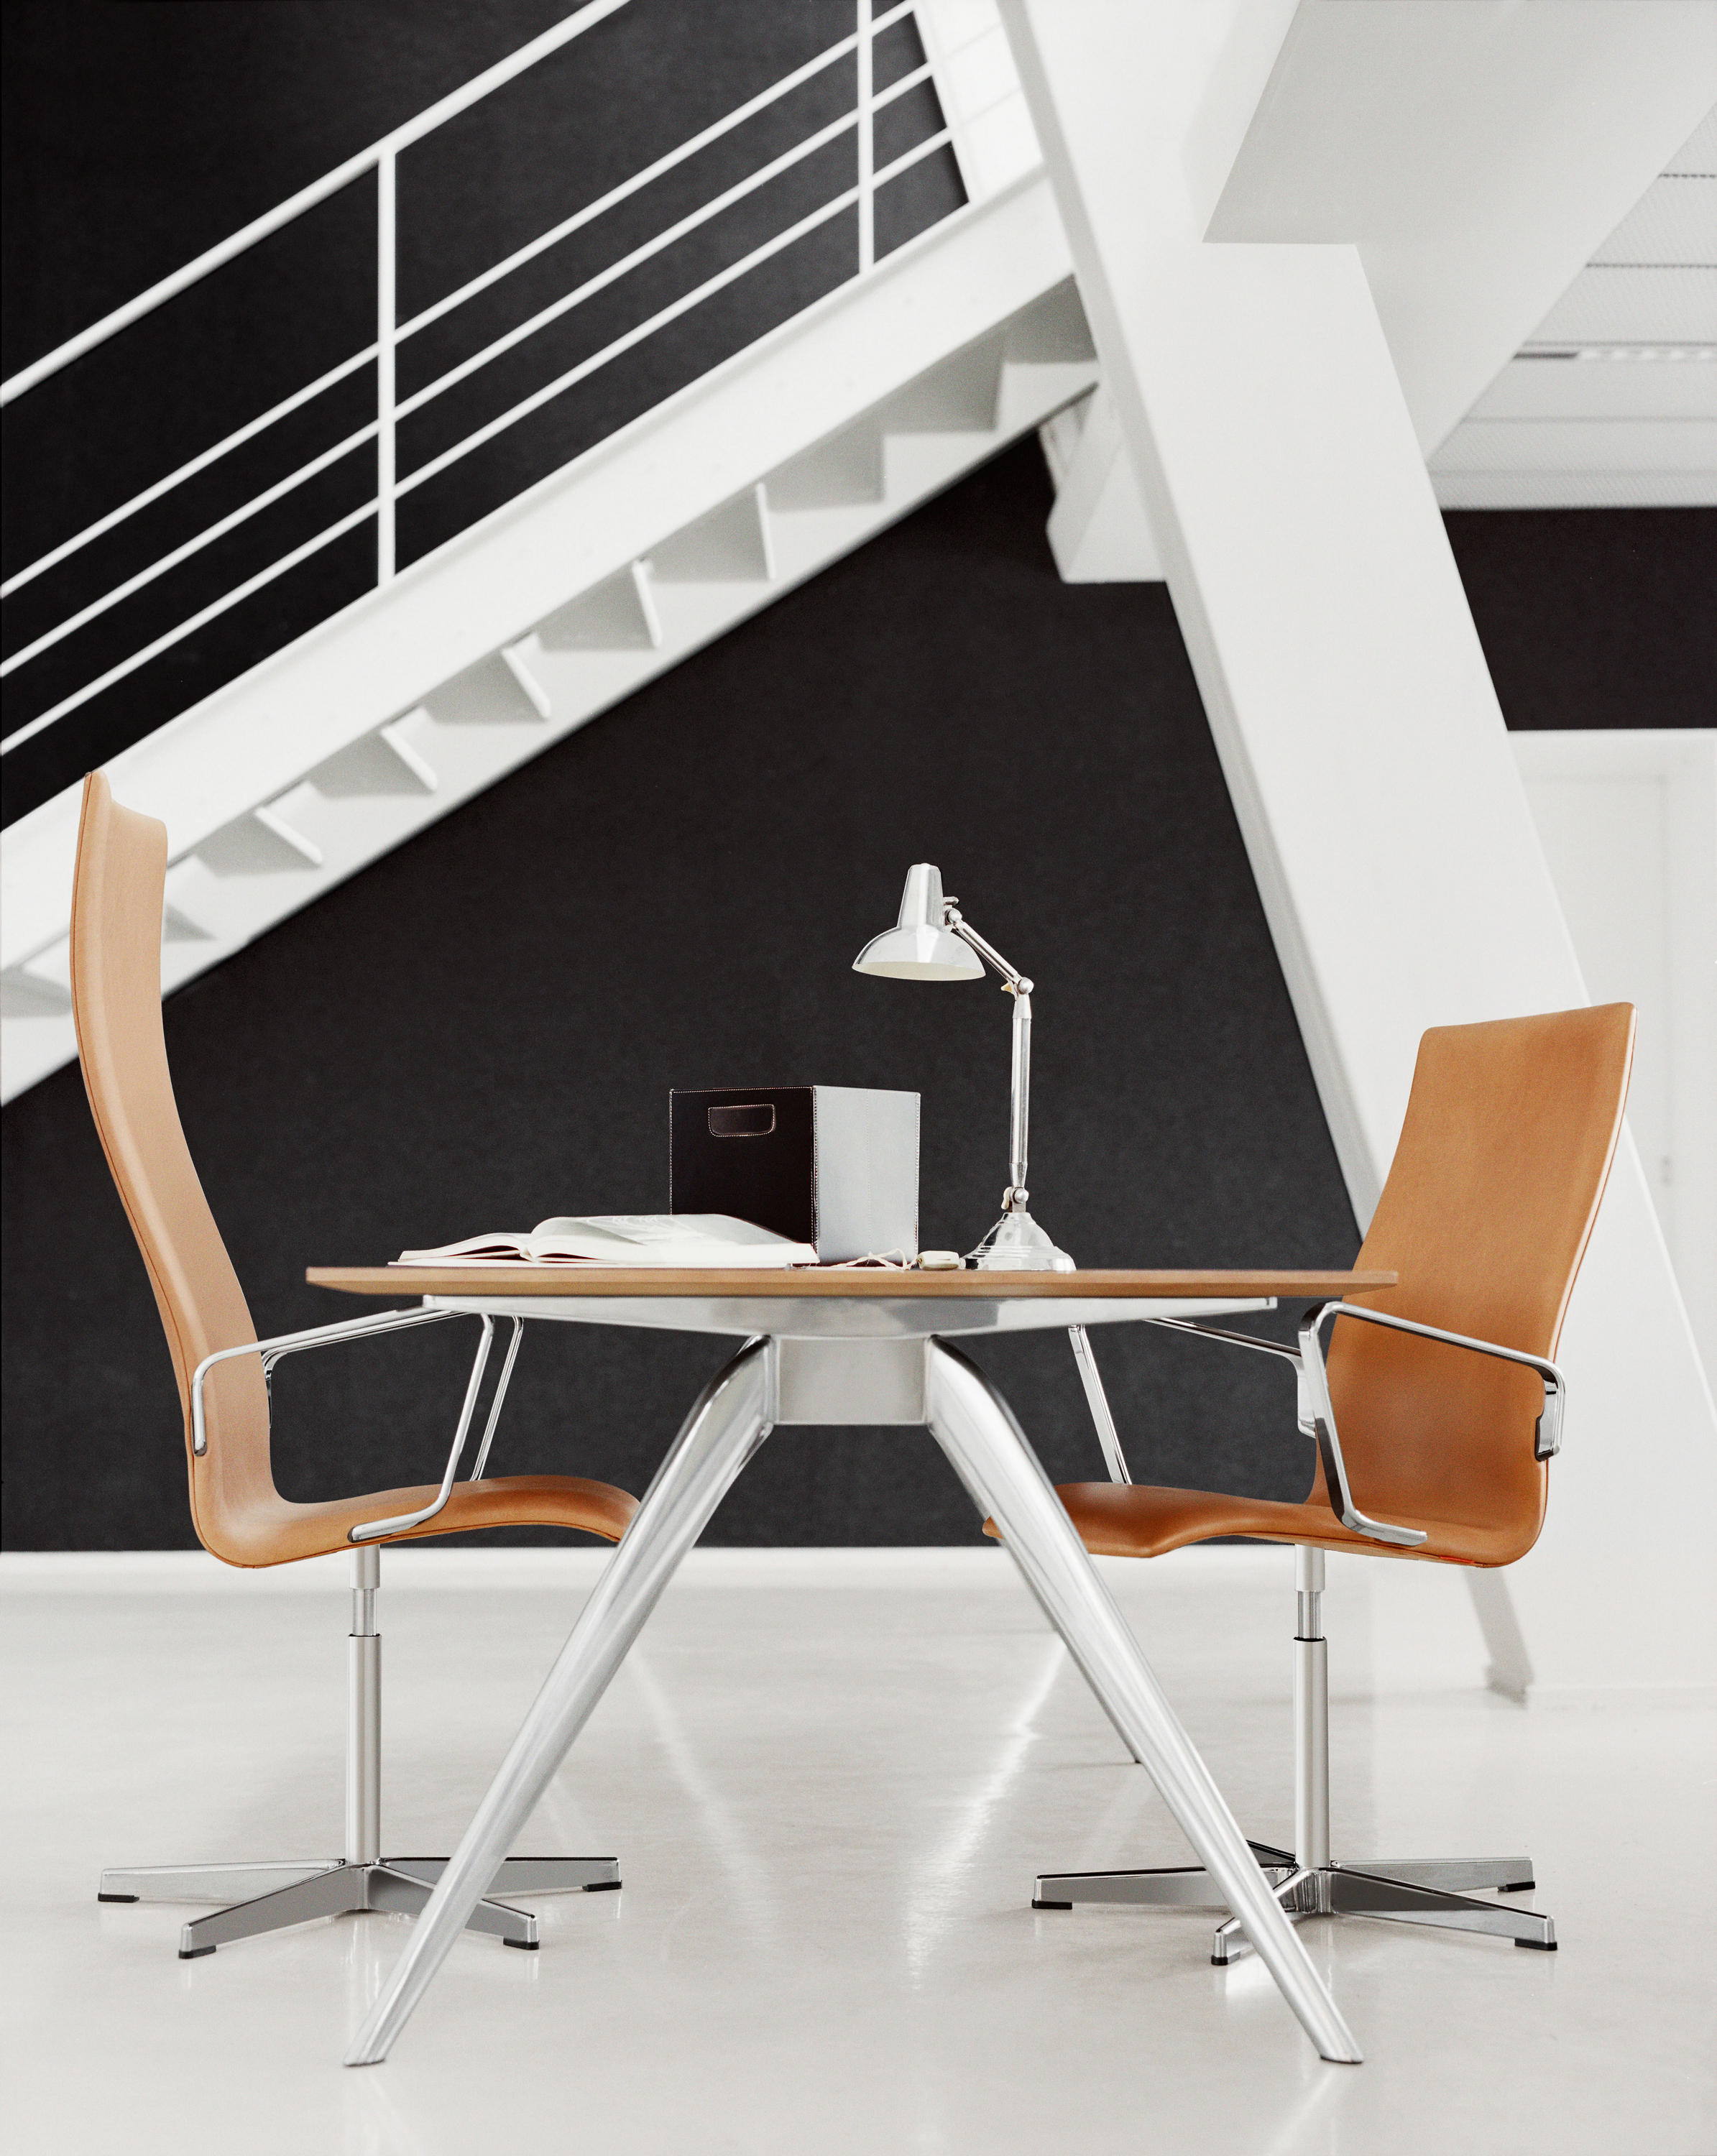 ... Oxford™ | 3171 by Fritz Hansen ... & OXFORD™ | 3171 - Chairs from Fritz Hansen | Architonic